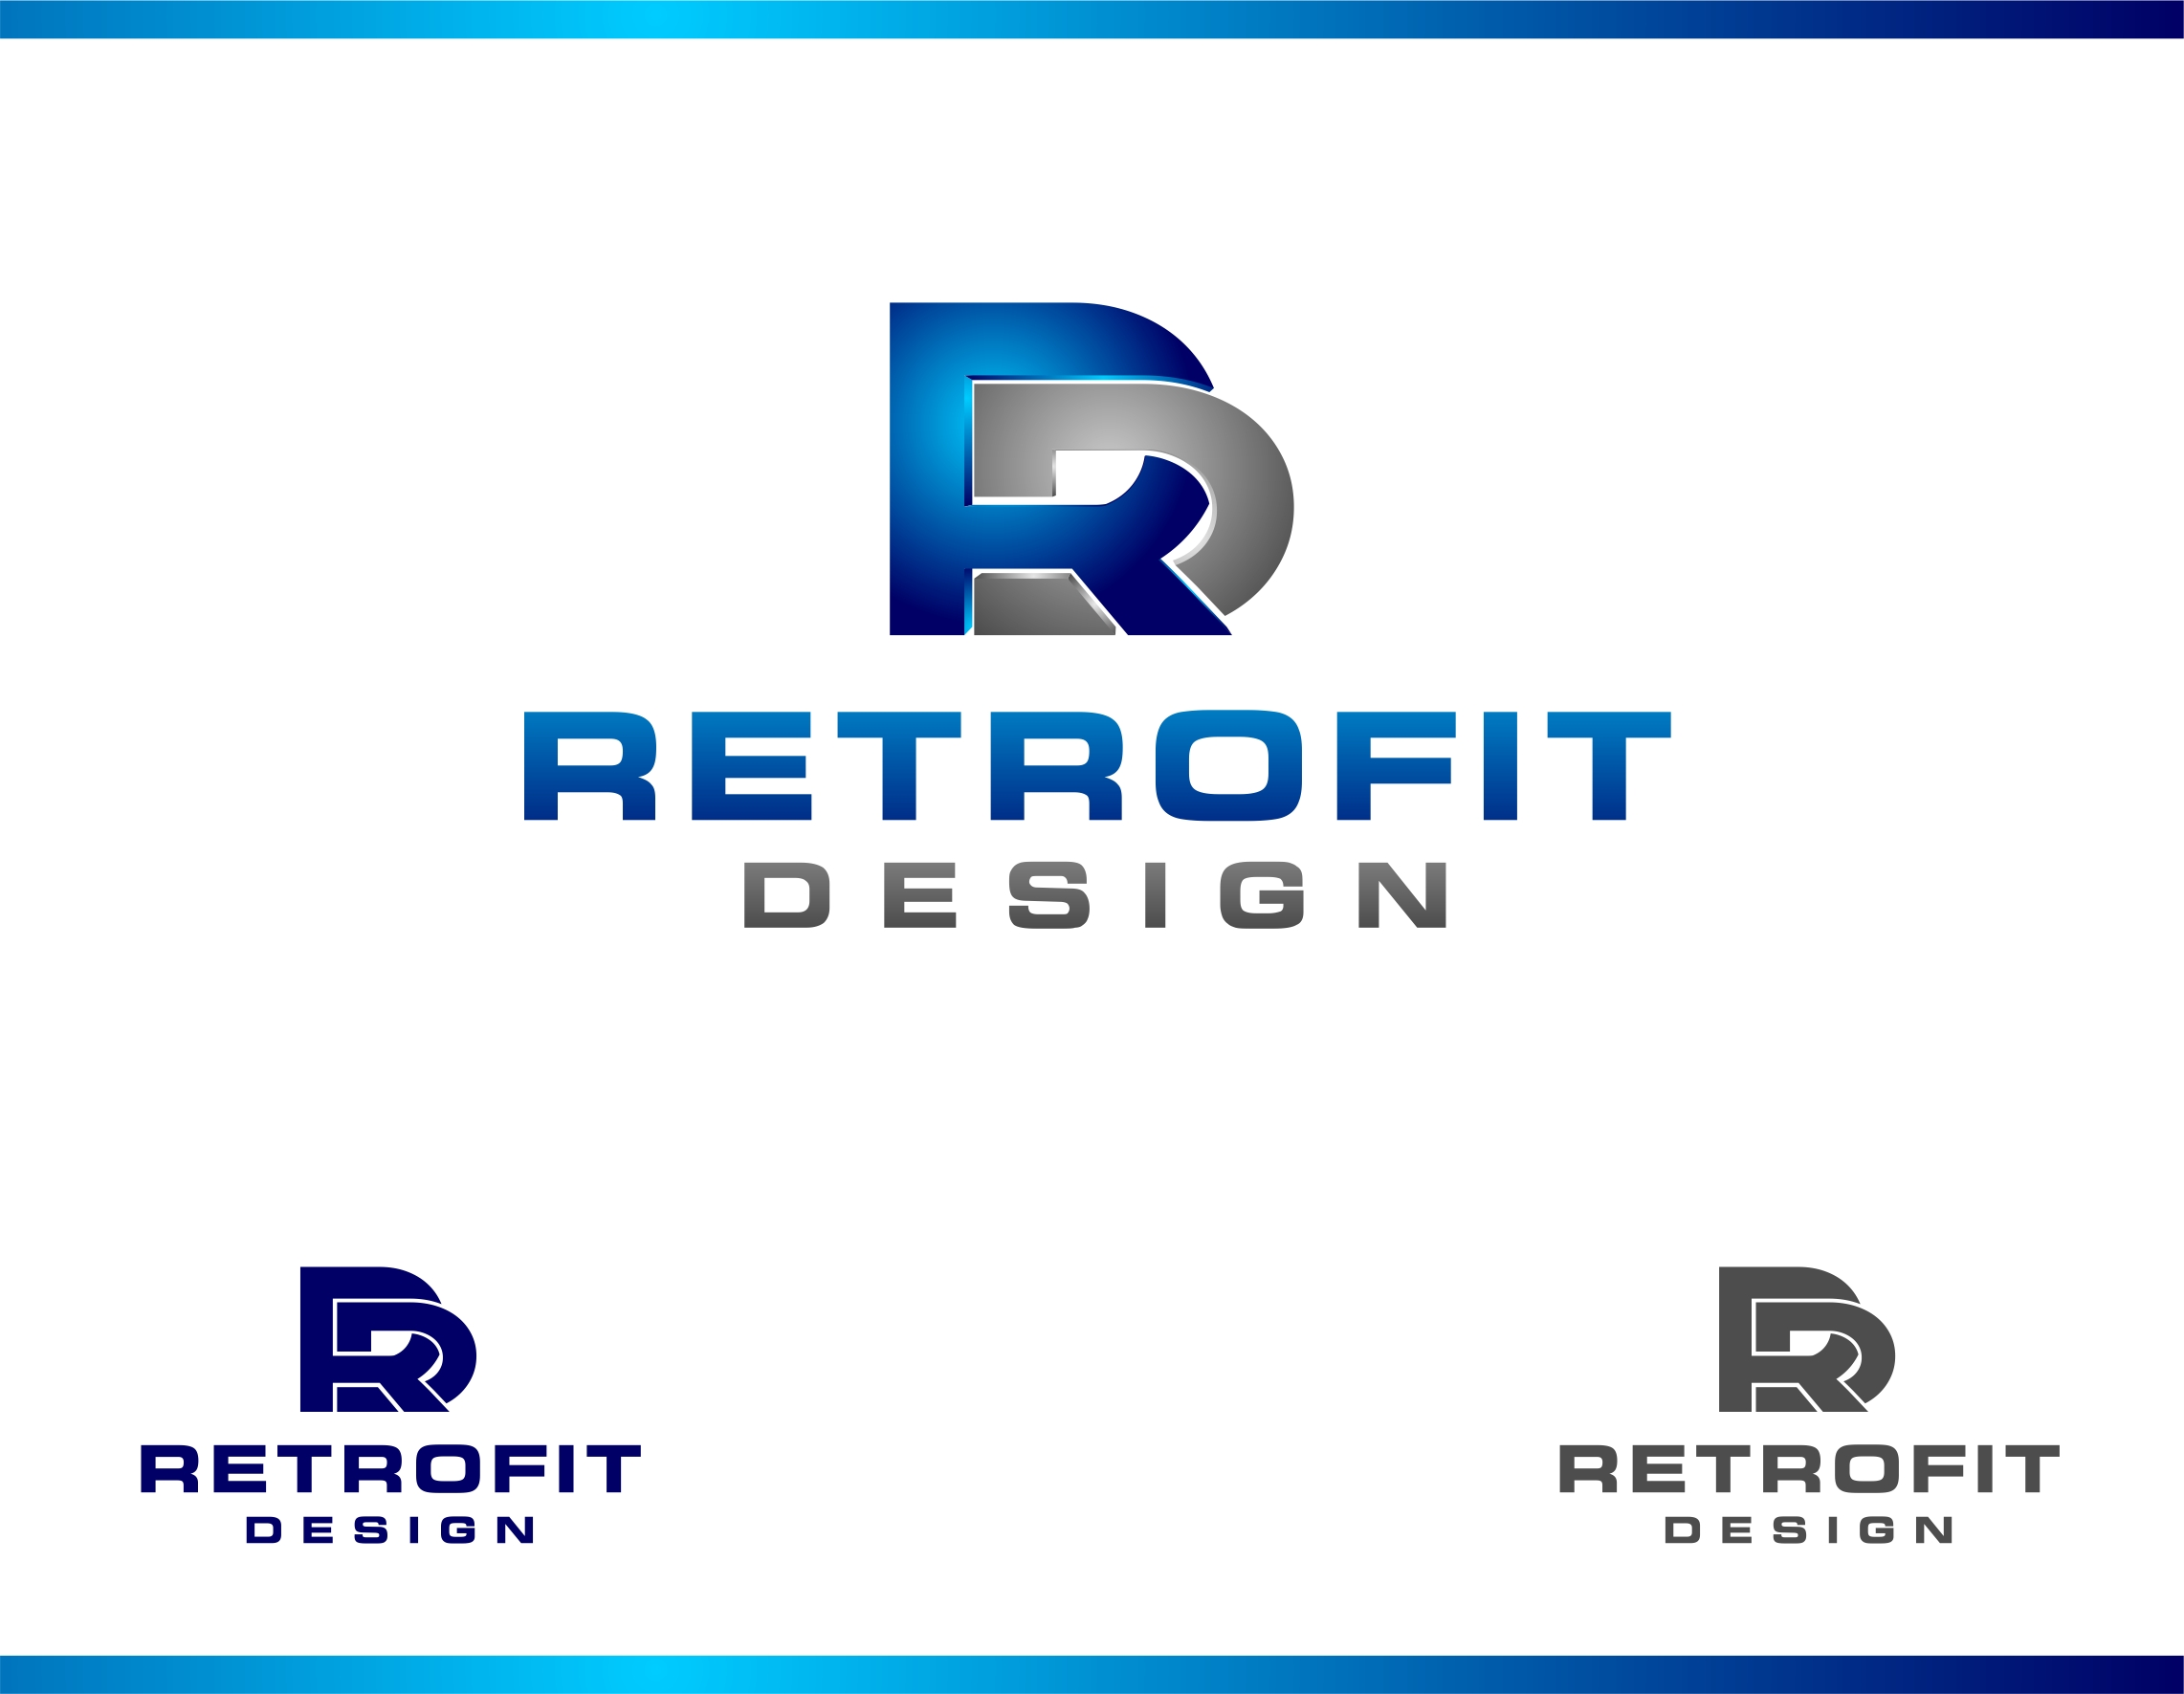 Logo Design by haidu - Entry No. 186 in the Logo Design Contest Inspiring Logo Design for retrofit design.